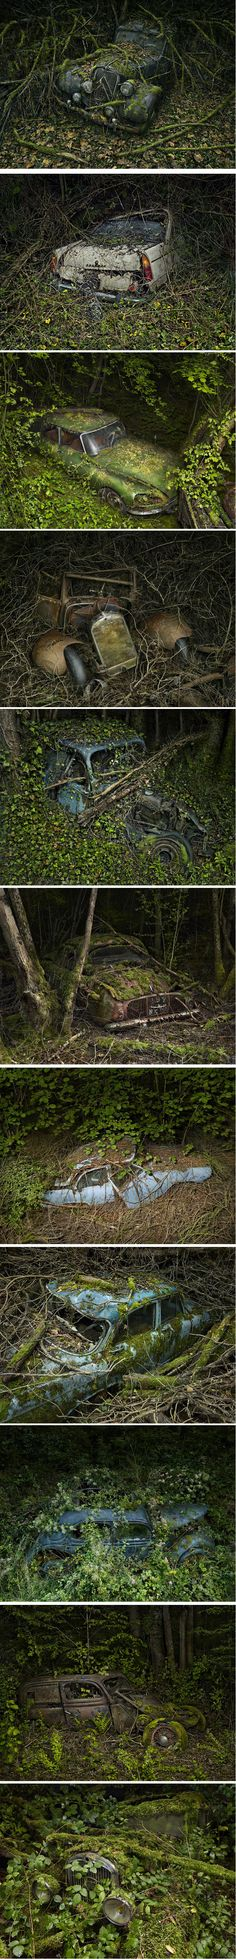 PeterLippmann.com .#jorgenca Why doesn't some Government office clean up the mess, reclaim the metal and stop ruining the environment. Drove through West Virginia, so proud of their scenery and wrote to ask about the many old cars by the roadside, obviously there for a long time. Hardly scenic.